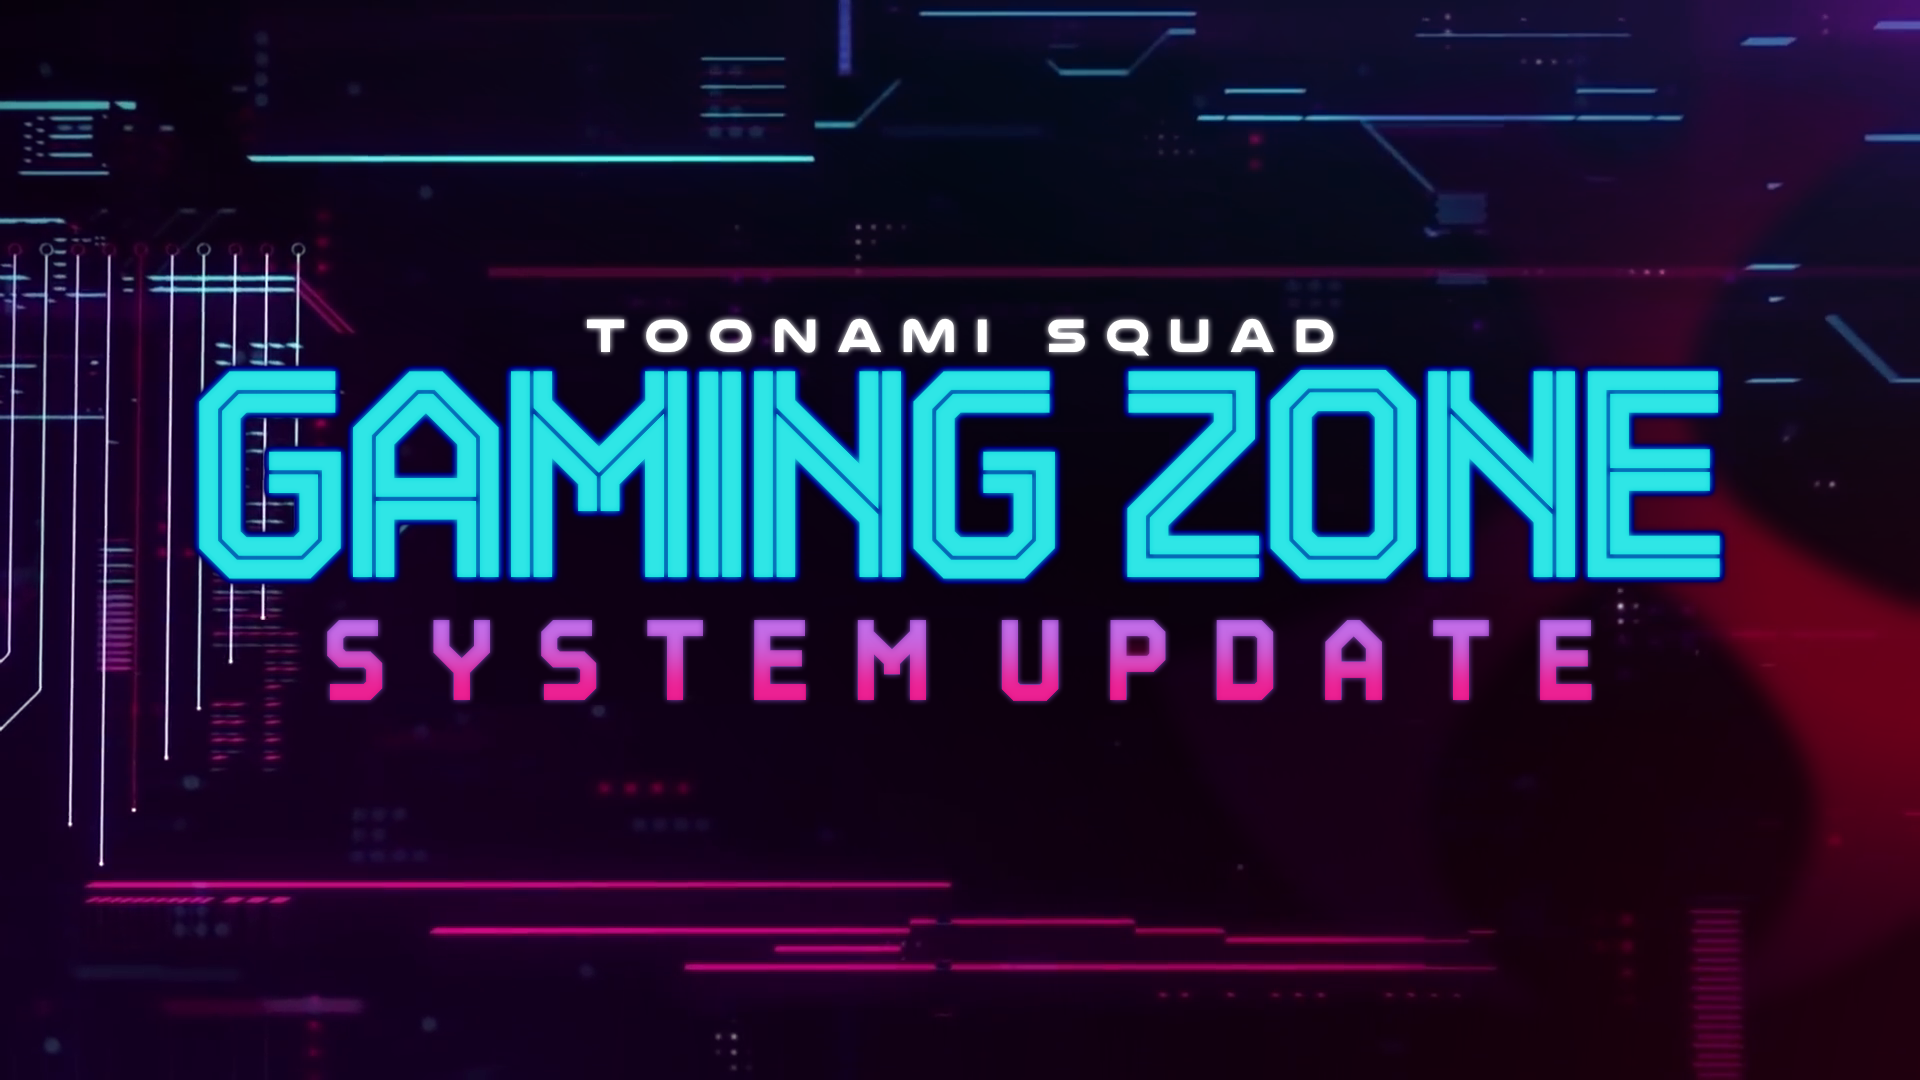 Toonami Squad Gaming Zone System Update 12/14